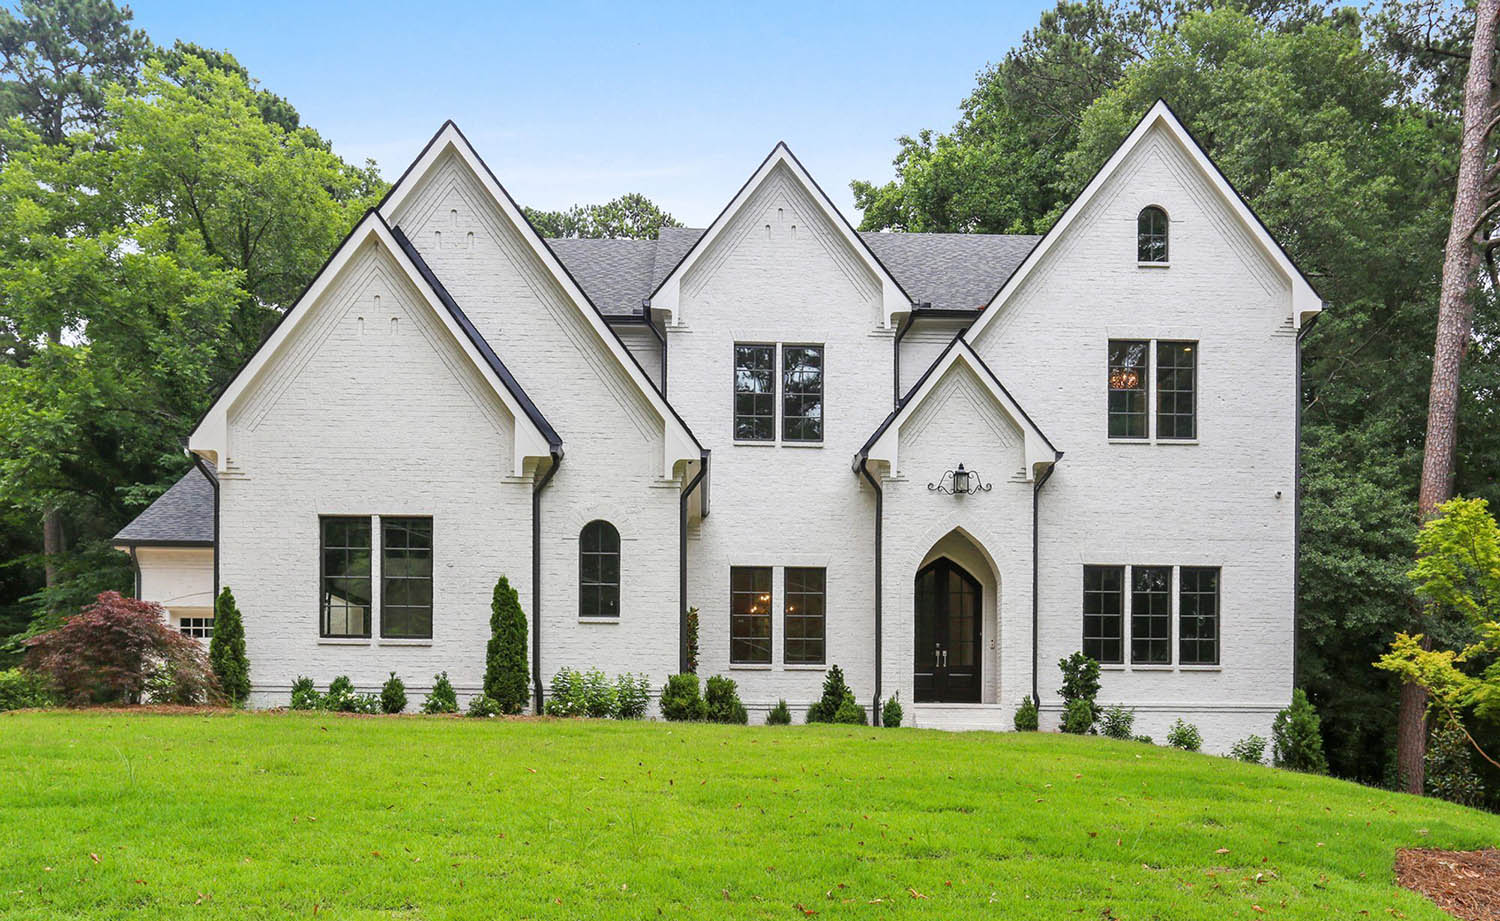 painted white brick house with black framed windows and a black front door with black gutters